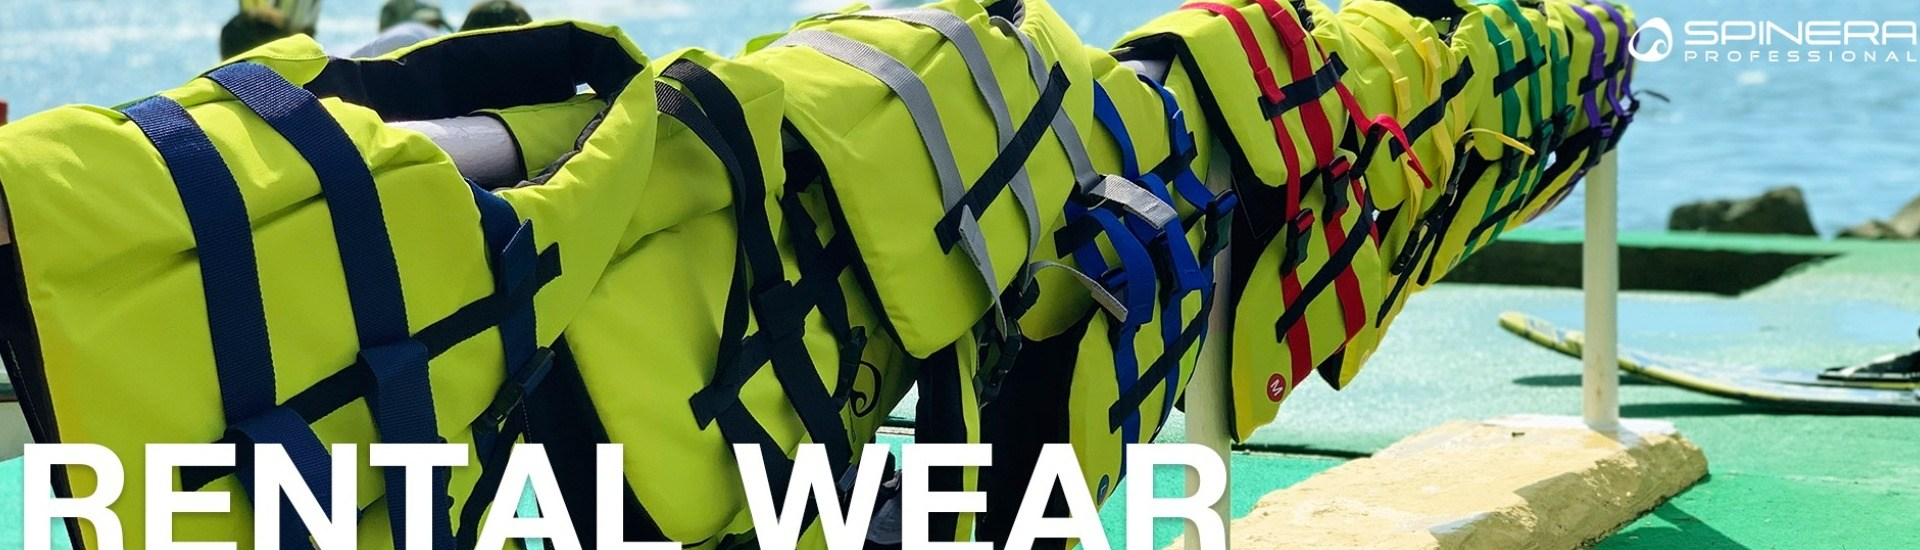 renting vests in different colours